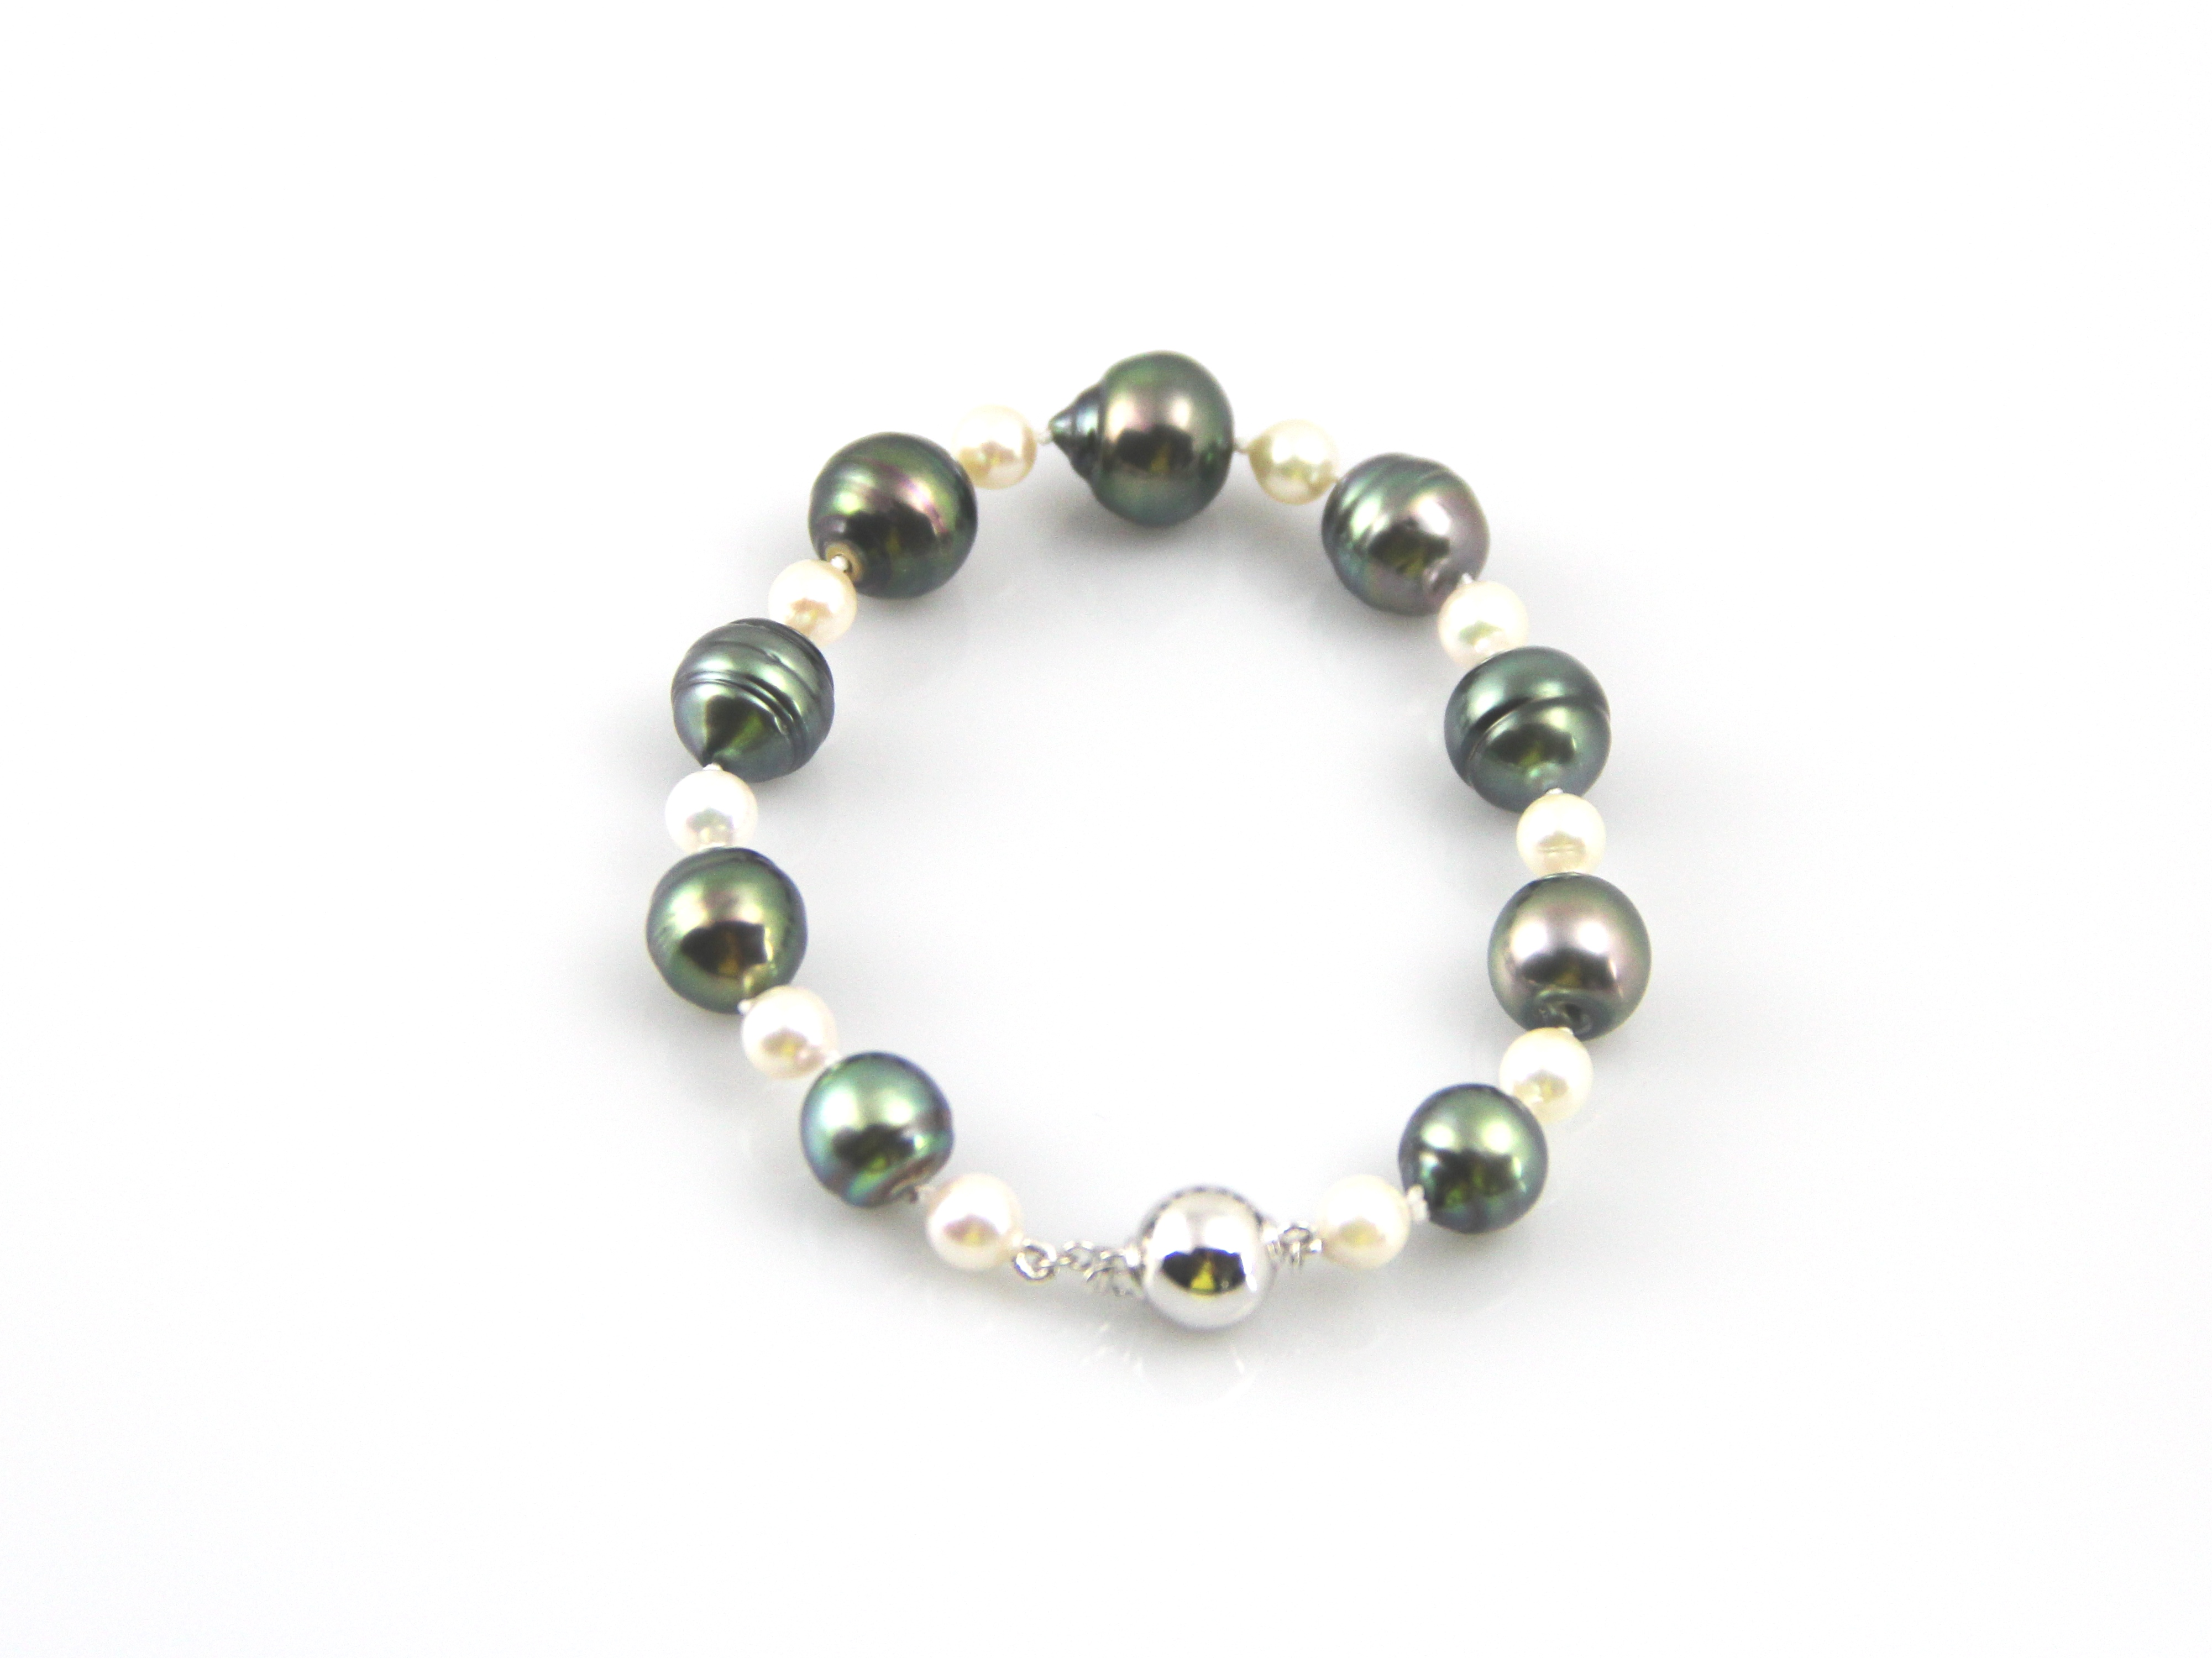 Pearl Bracelet With Akoya Pearls And Tahitian Pearls